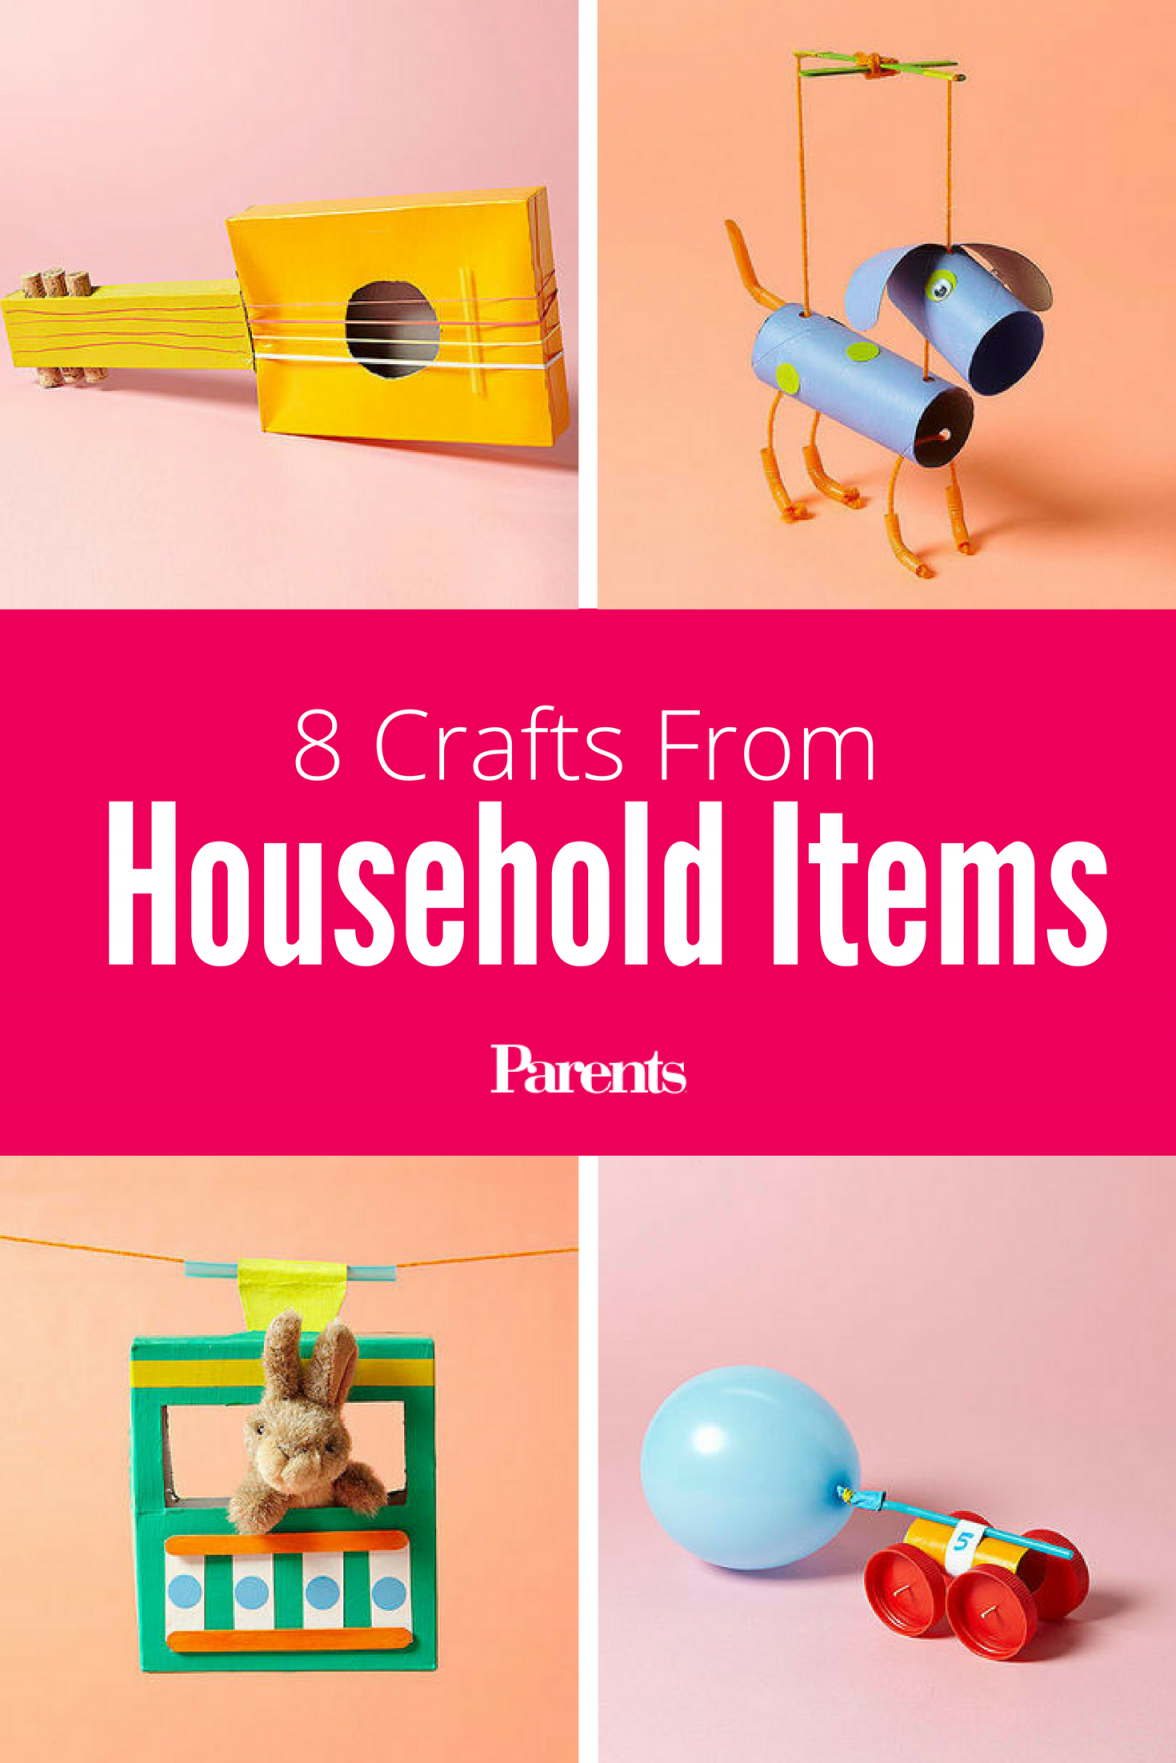 Amazing diy crafts with household items